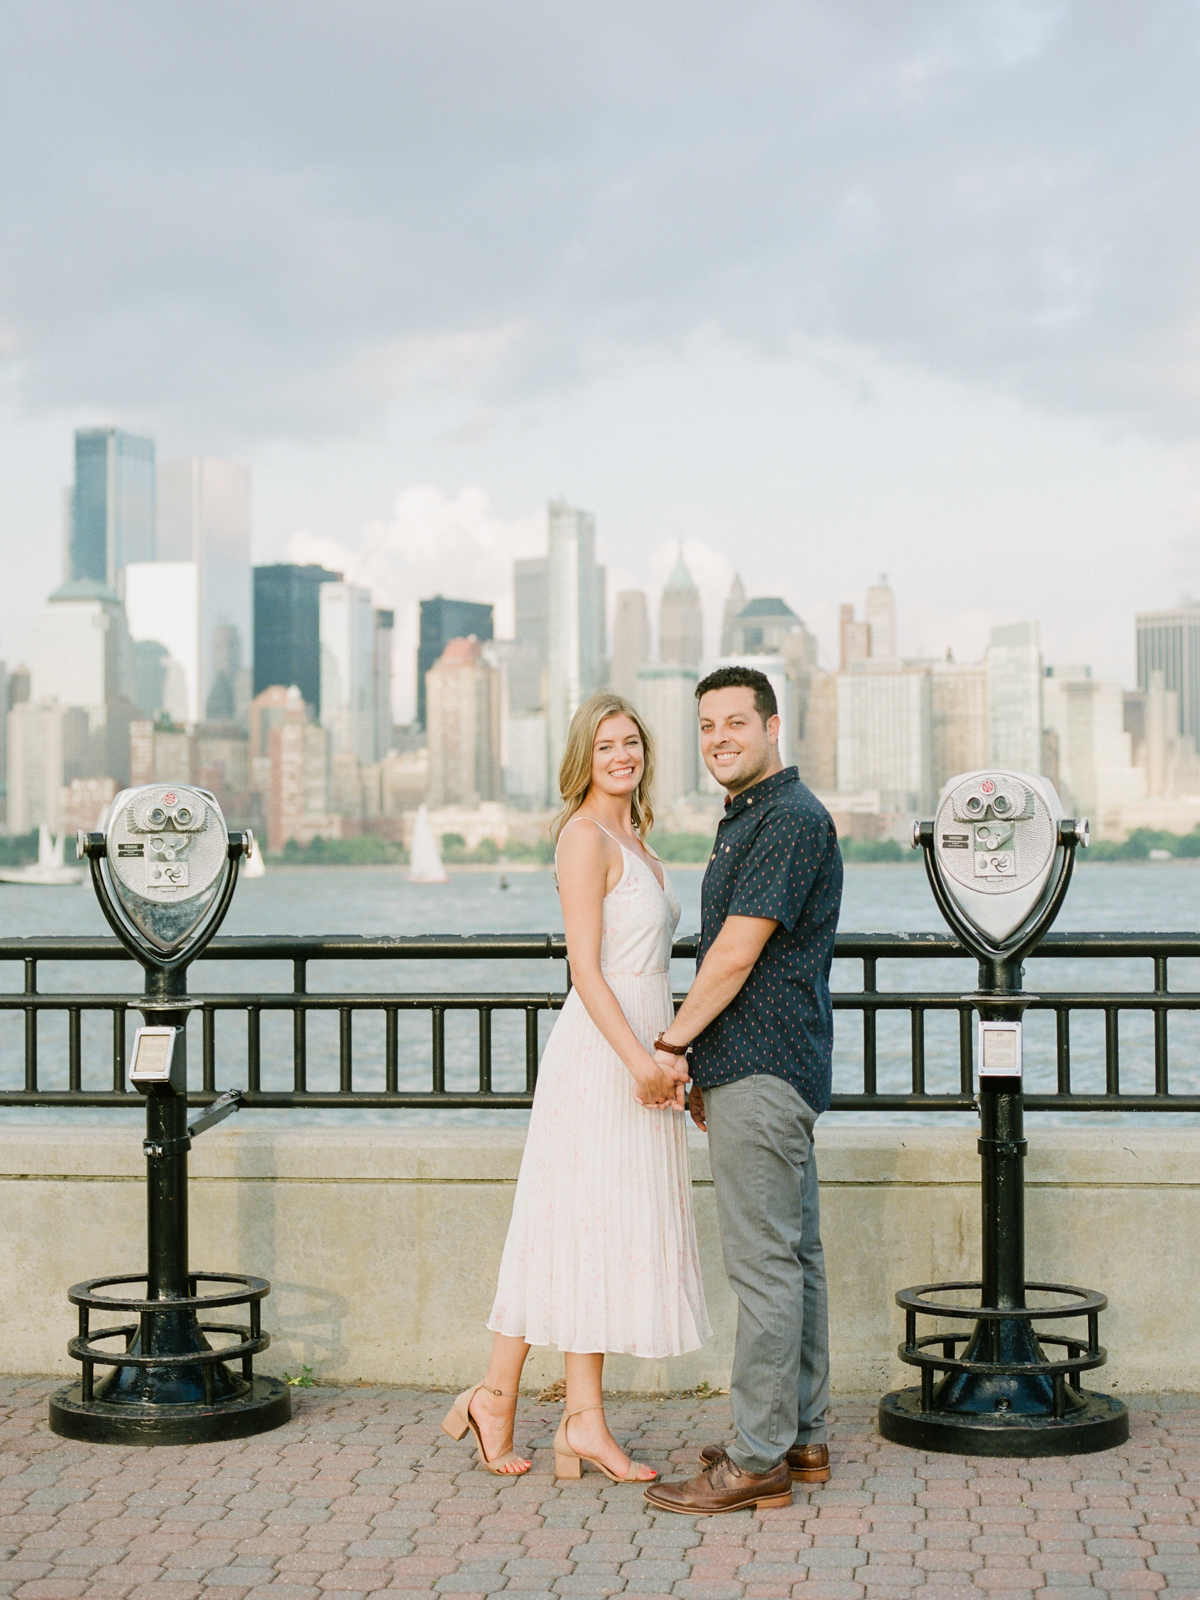 NYC-skyline-engagement-session-by-Tanya Isaeva-29.jpg